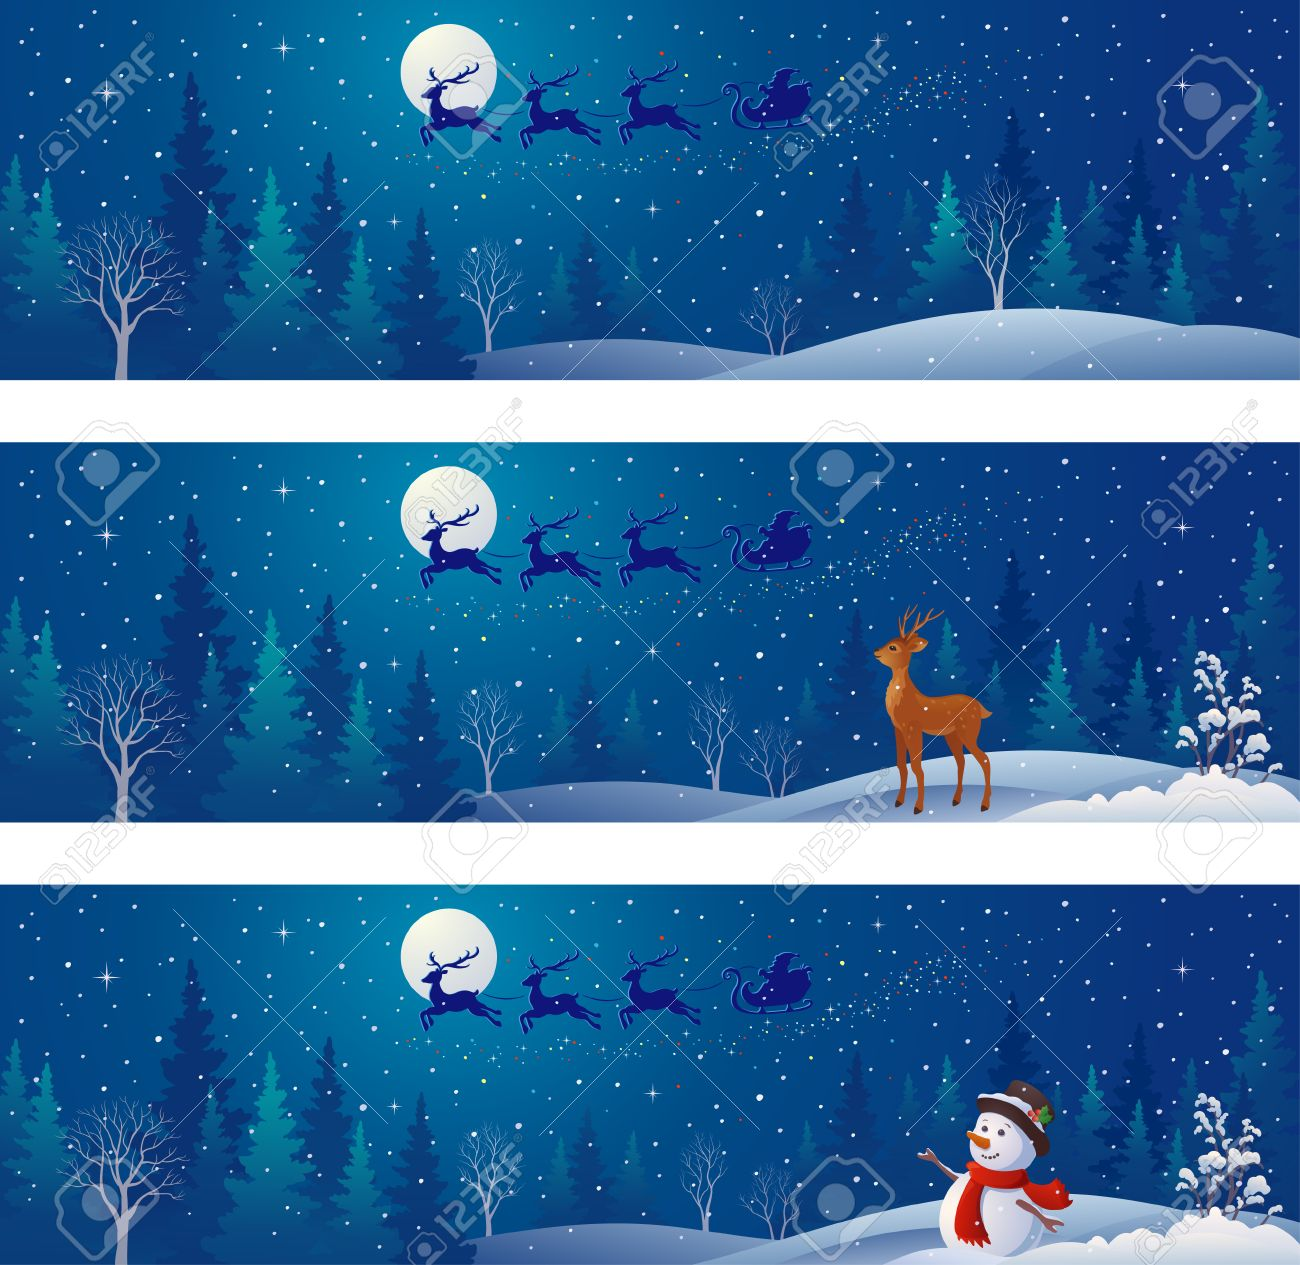 Christmas Scene Drawing.Drawing Of Christmas Night Scenes With Santa Claus Sleigh Silhouette